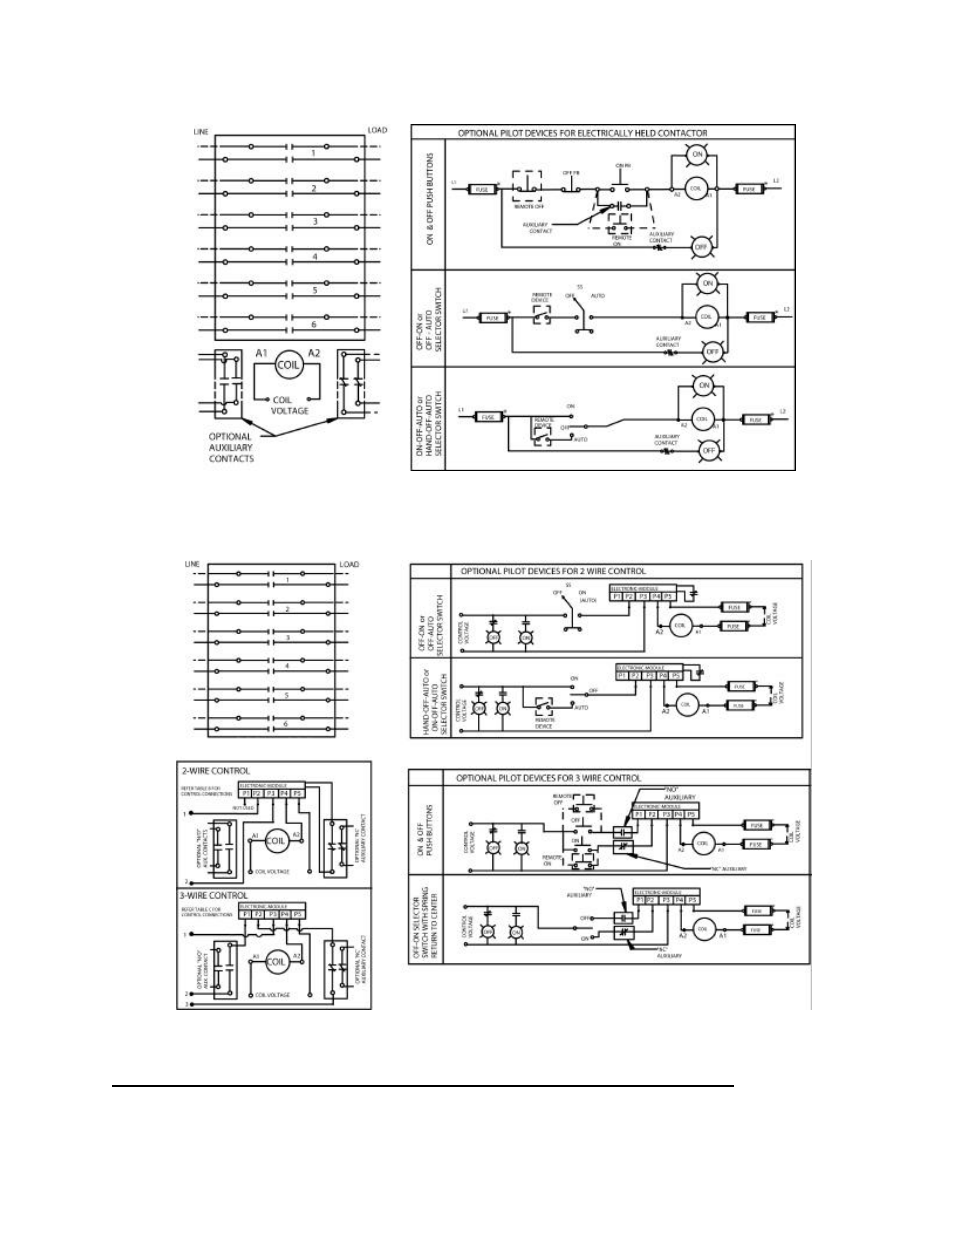 auxiliary lighting wiring diagram ge industrial solutions cr460 lighting contactor series ... #8